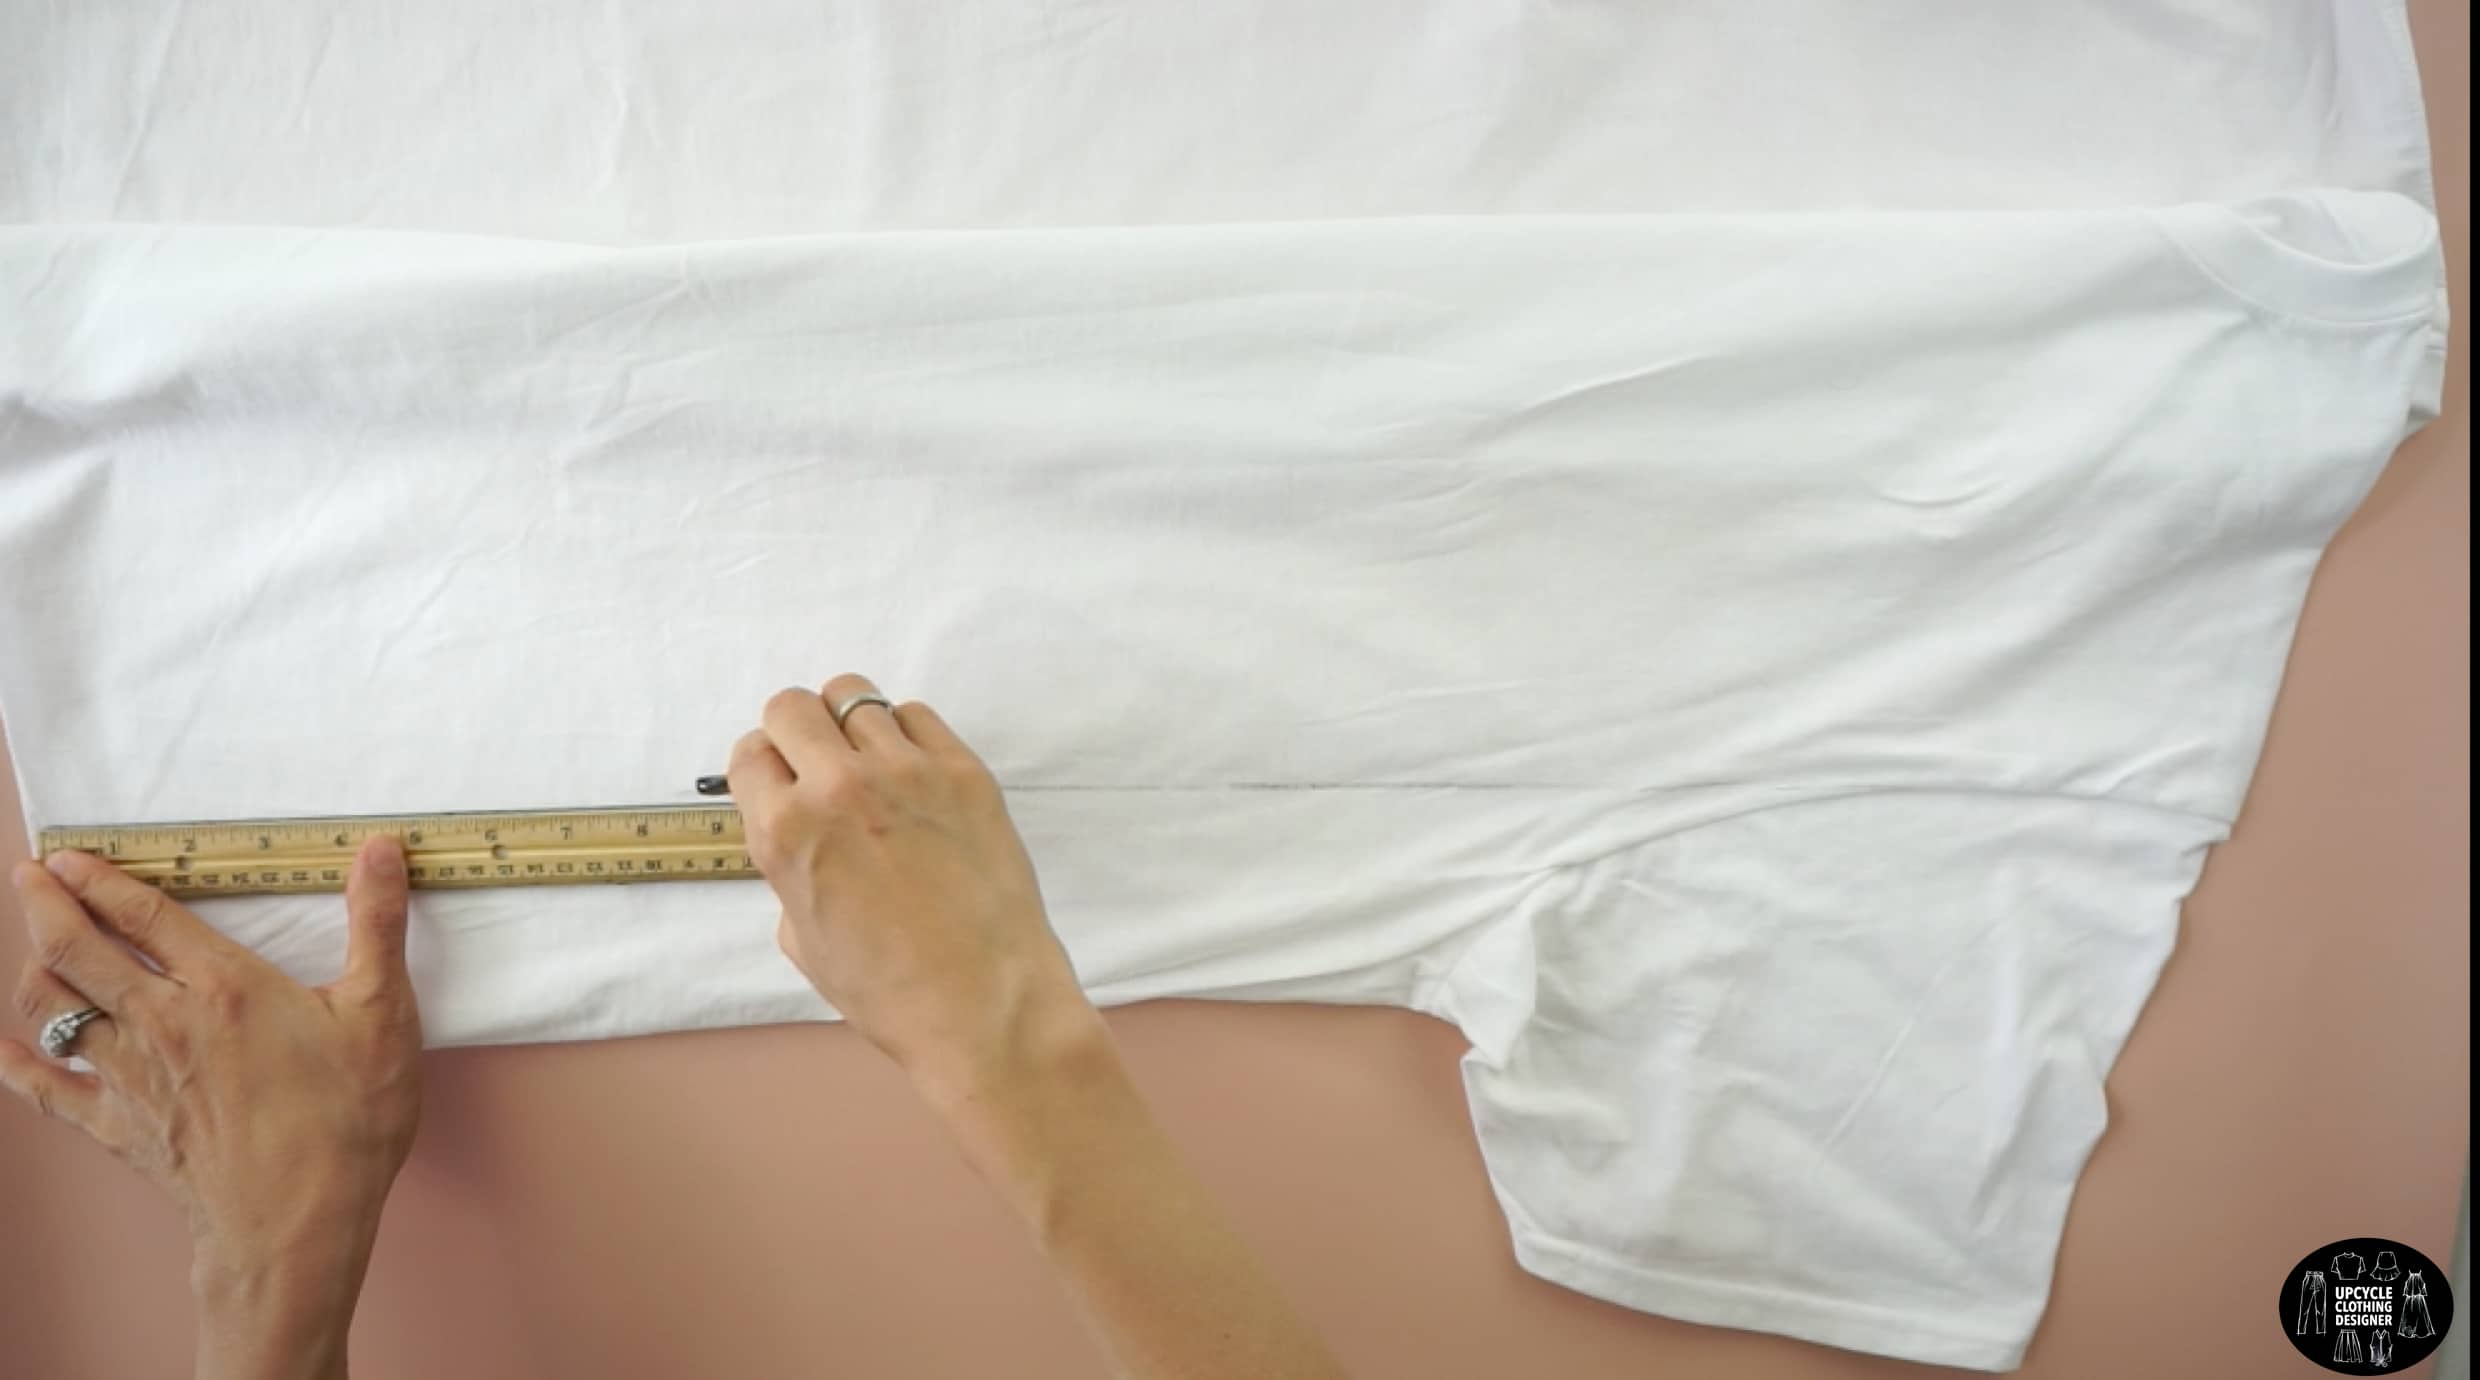 Lay the tee flat. Draw a straight line from the armhole opening to the hemline.